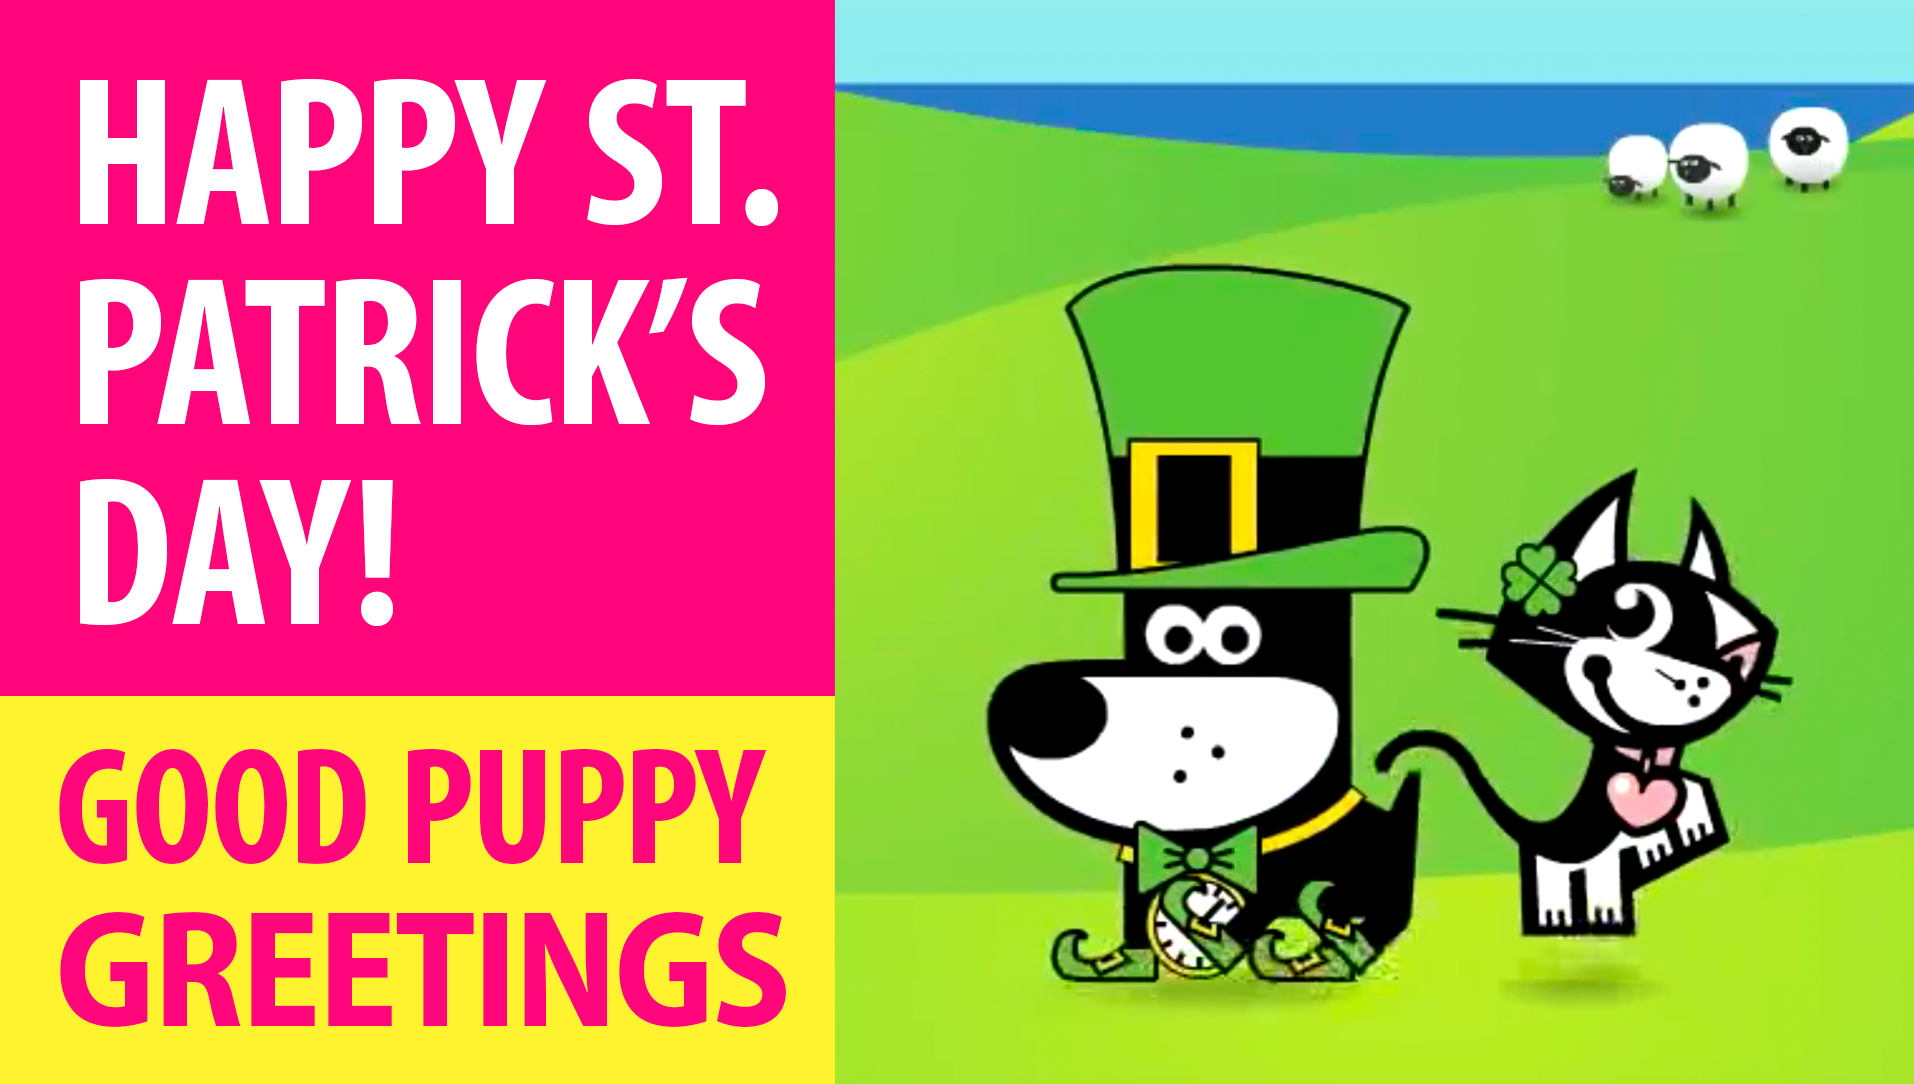 Happy St. Patrick's Day! Animated Greeting Cards - Free E-Cards By GOOD PUPPY